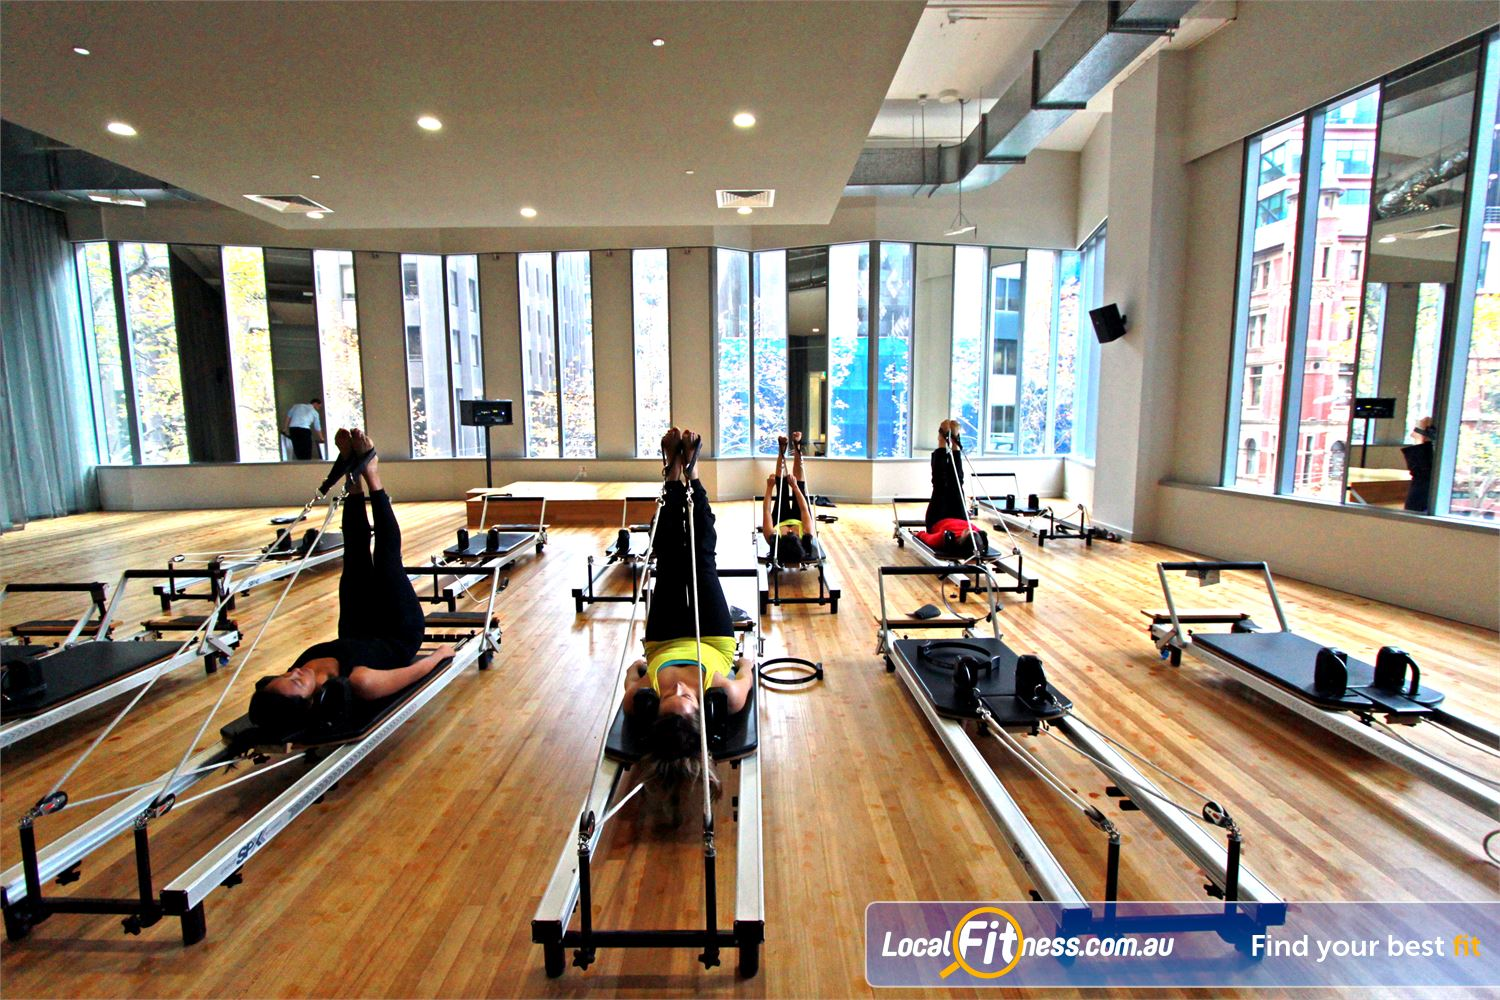 South Pacific Health Clubs Near Southbank Dedicated Wellness studio providing speciality Melbourne Pilates Reformer classes.